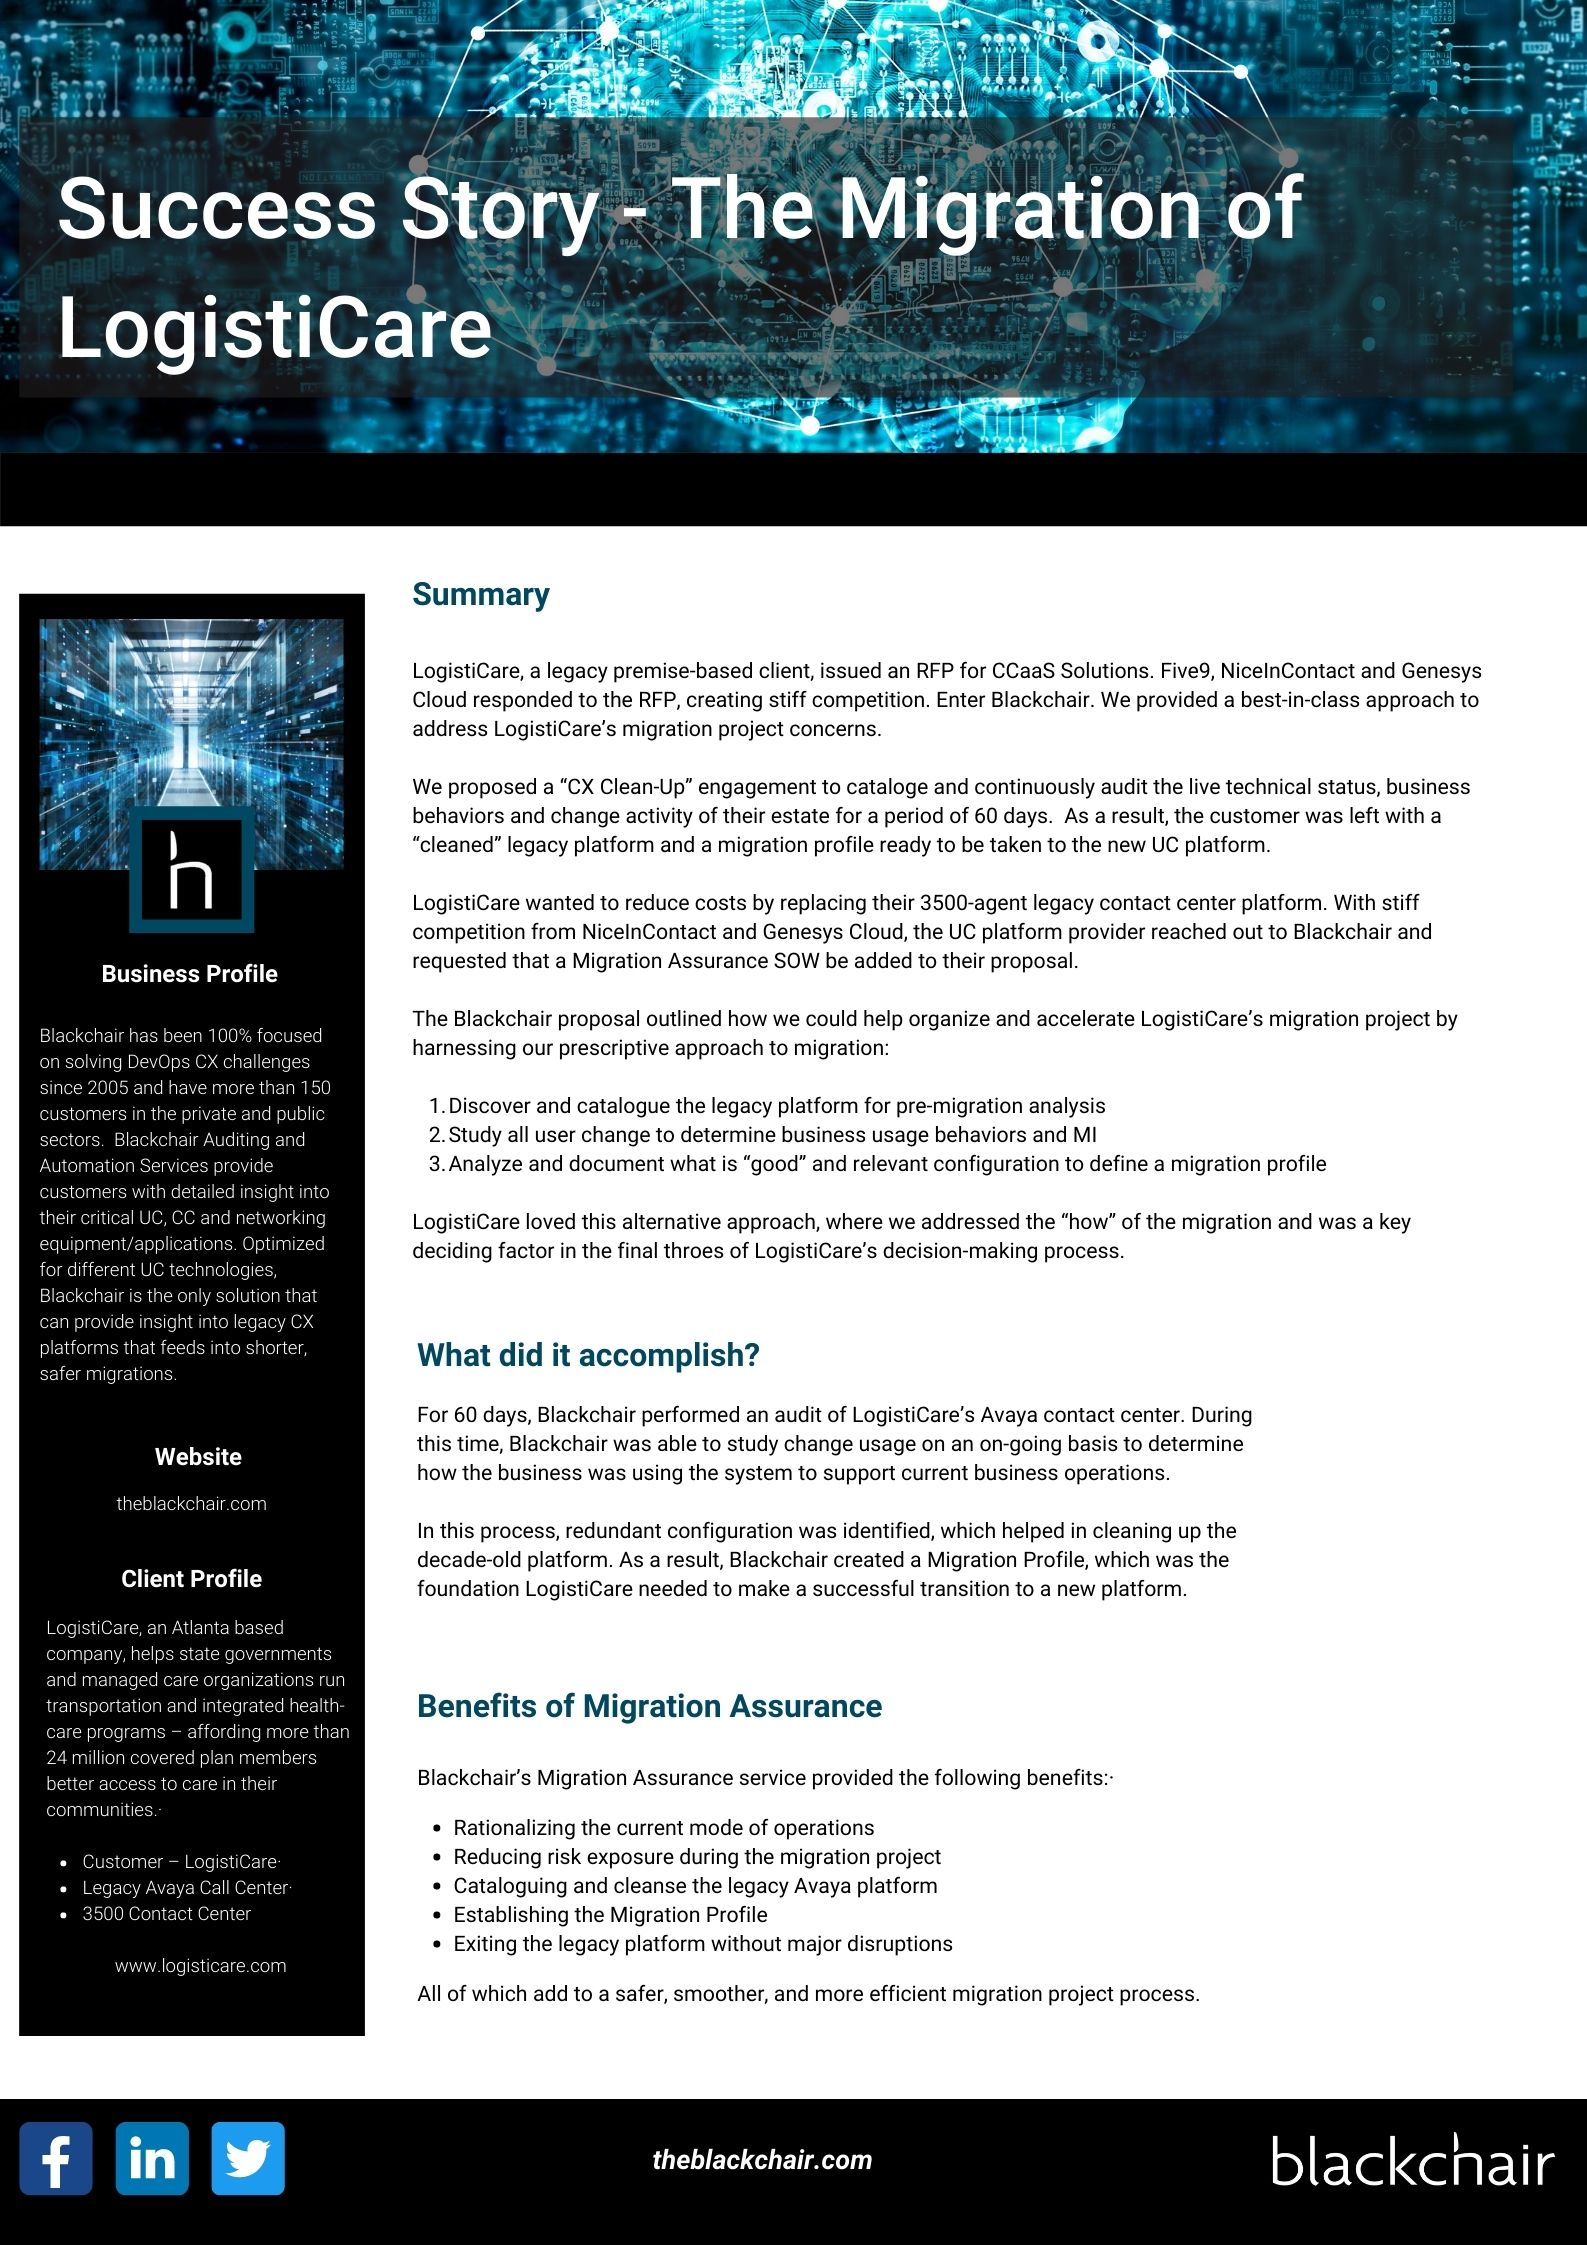 Blackchair - One Page Asset - Migration of Logisticare (Success Story)